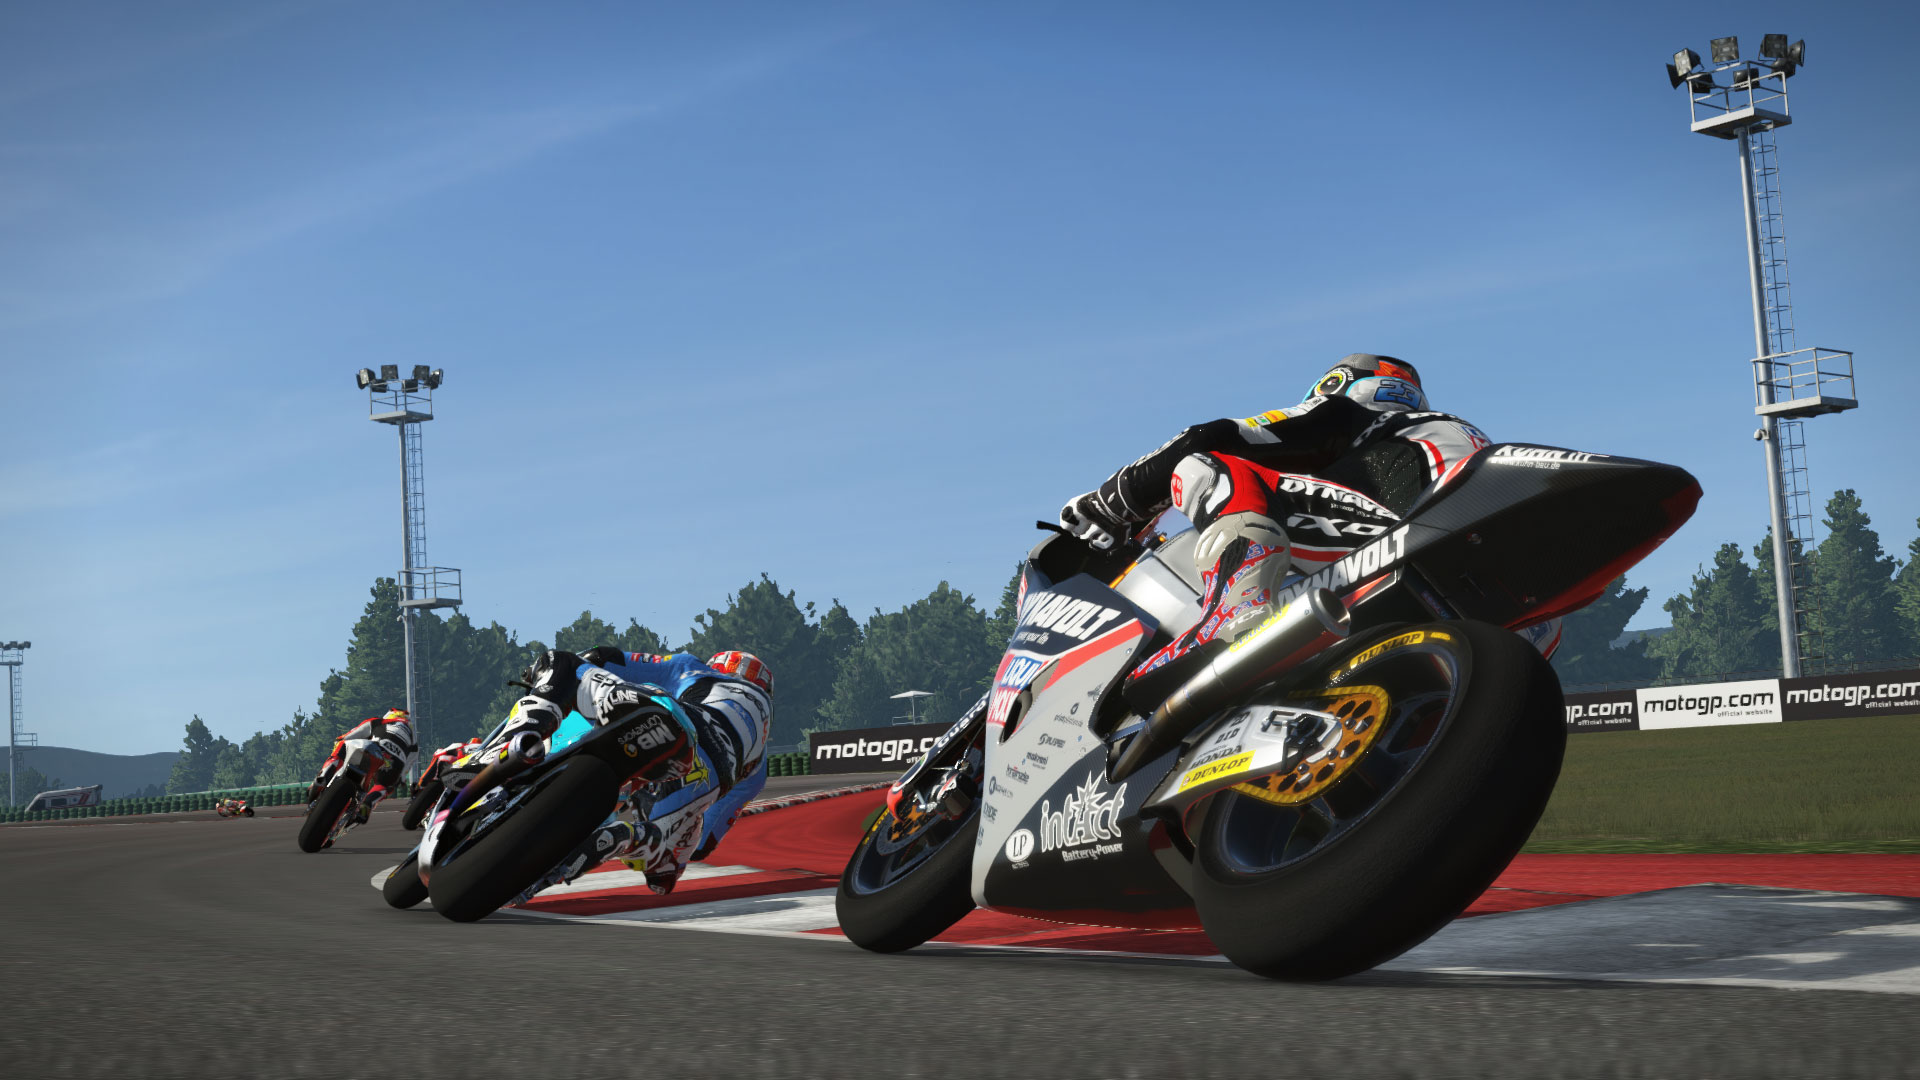 MotoGP 17 Free Full Game Download - Free PC Games Den